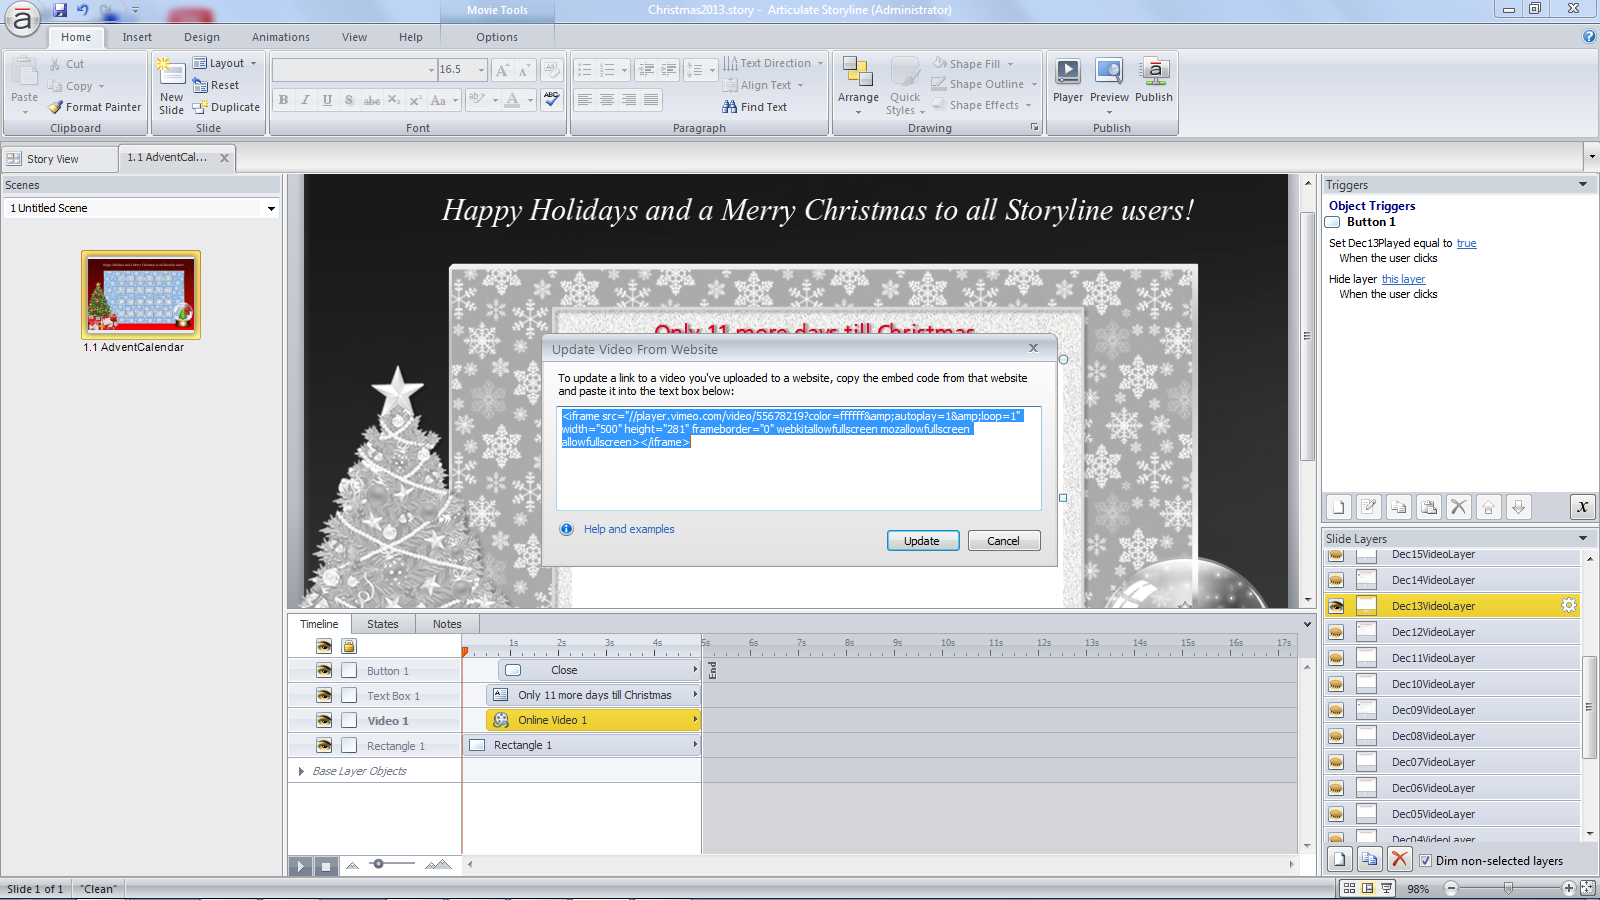 Fun Project for the Holiday Season: Building an Advent Calendar in Storyline